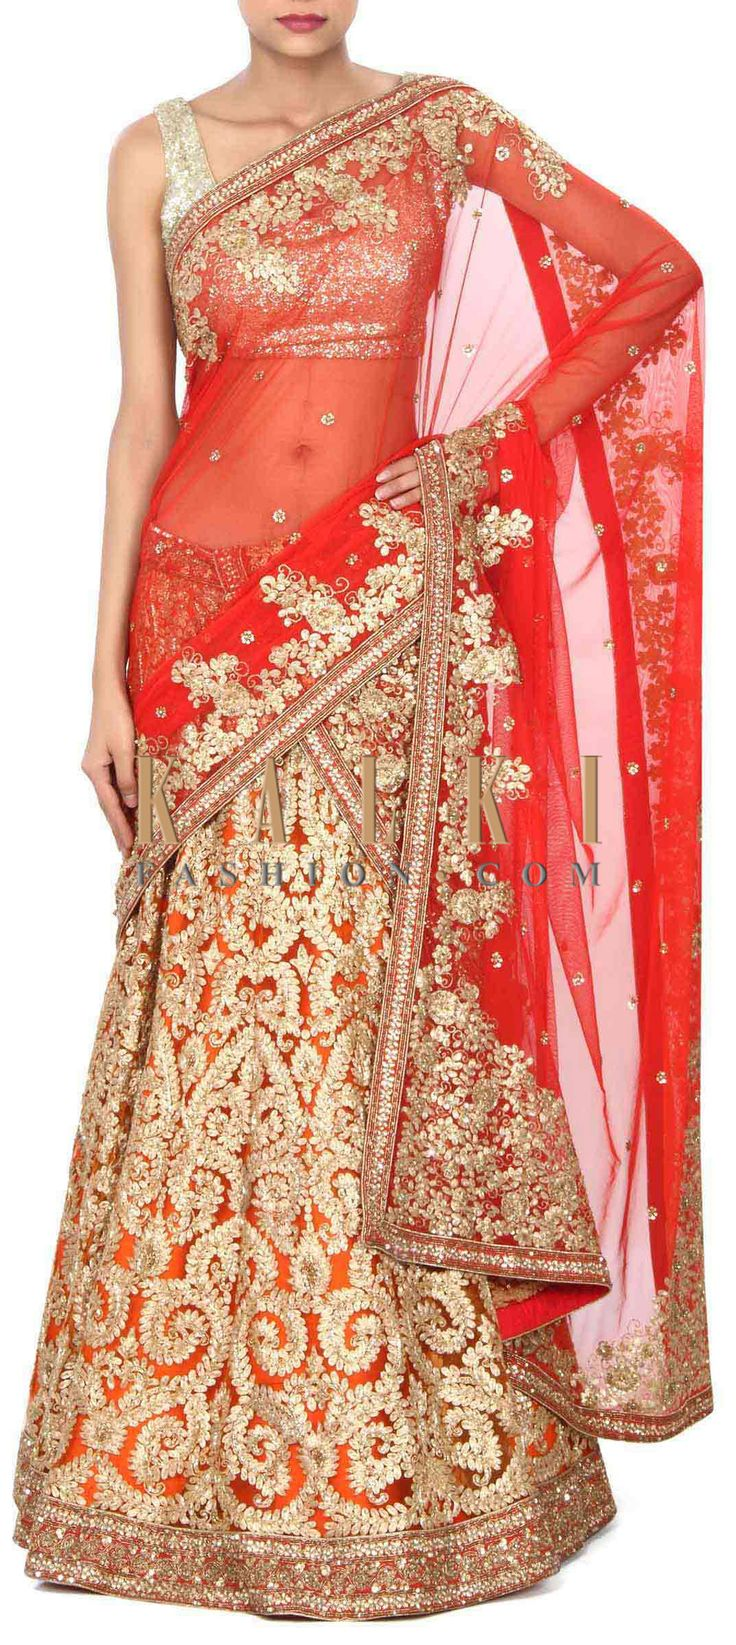 Buy this Orange and red lehenga with zari and sequin embroidery only on Kalki